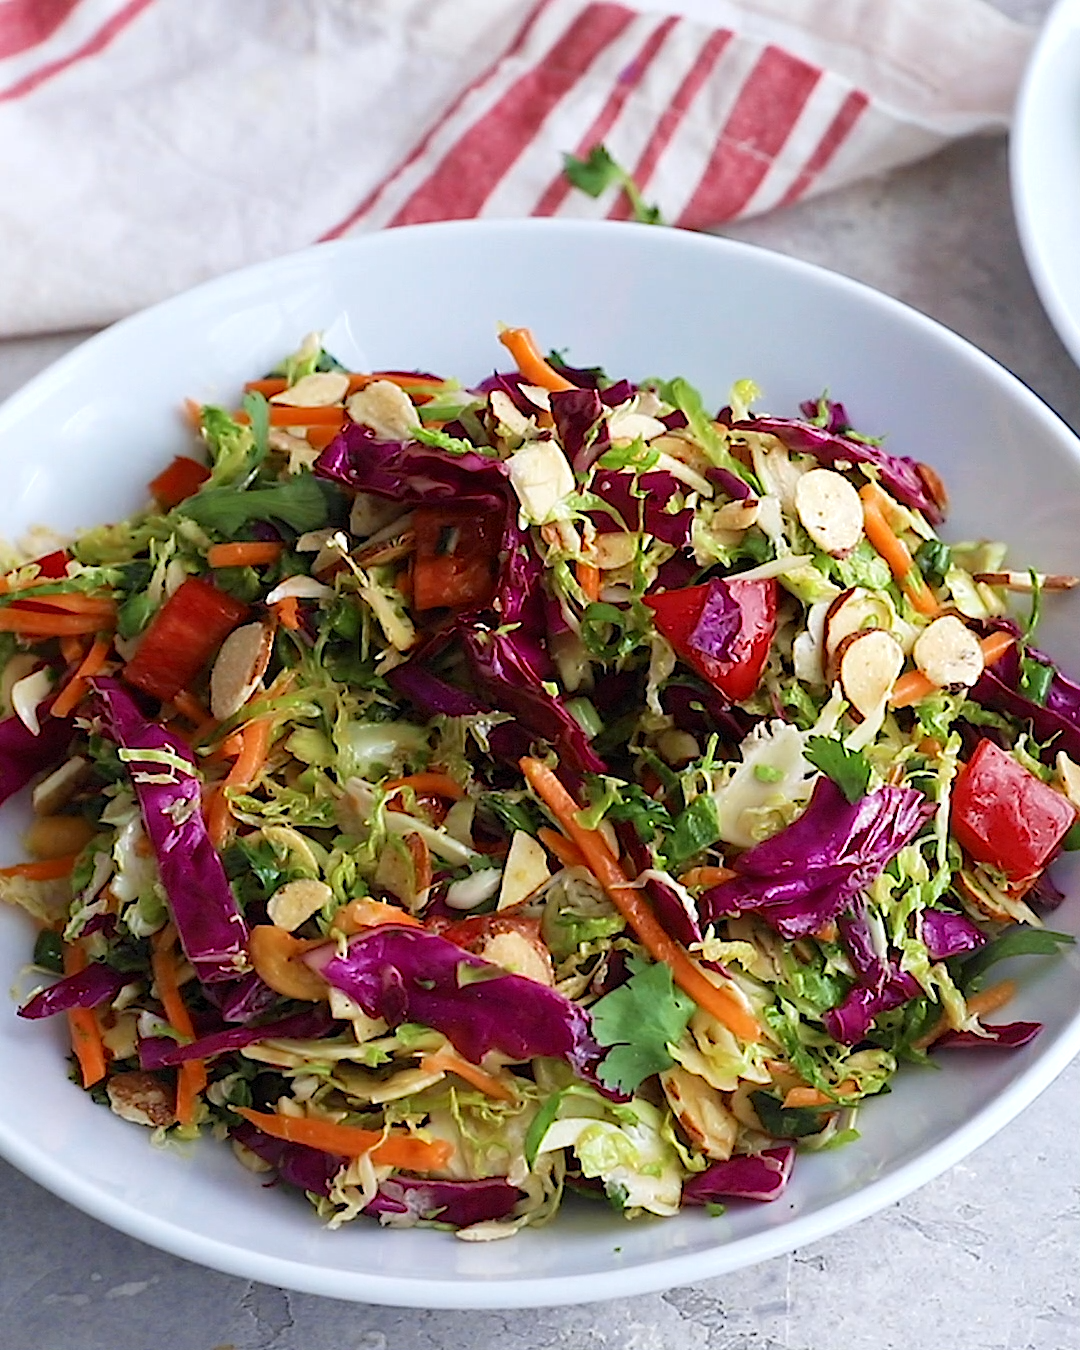 Crunch Shredded Brussels Sprouts Salad Delicious cashew crunch shredded brussels sprouts salad tossed in a flavorful sesame ginger dressing. This easy vegan salad recipe is loaded with colorful veggies and topped with crunchy roasted cashews and toasted almonds. Great for meal prep, parties and potlucks!Delicious cashew crunch shredd...